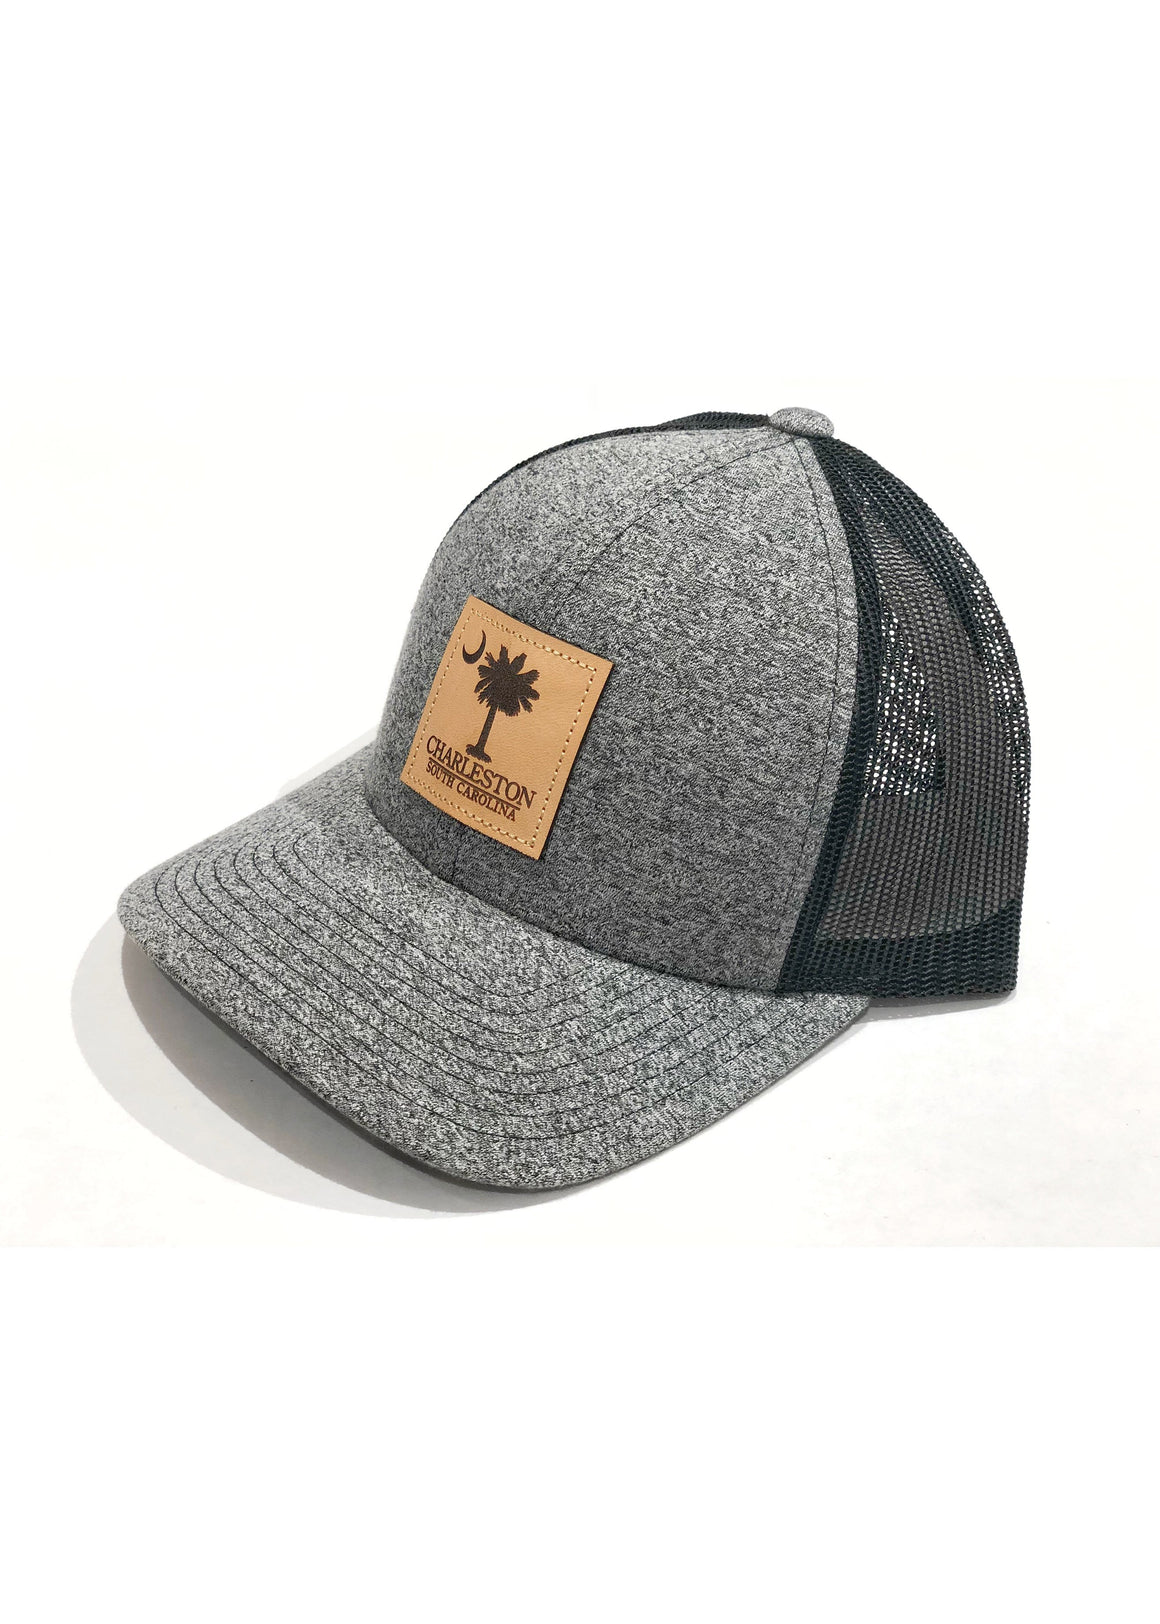 Trucker Hat with Palmetto and Crescent Moon Leather Patch | Black Heather / Black